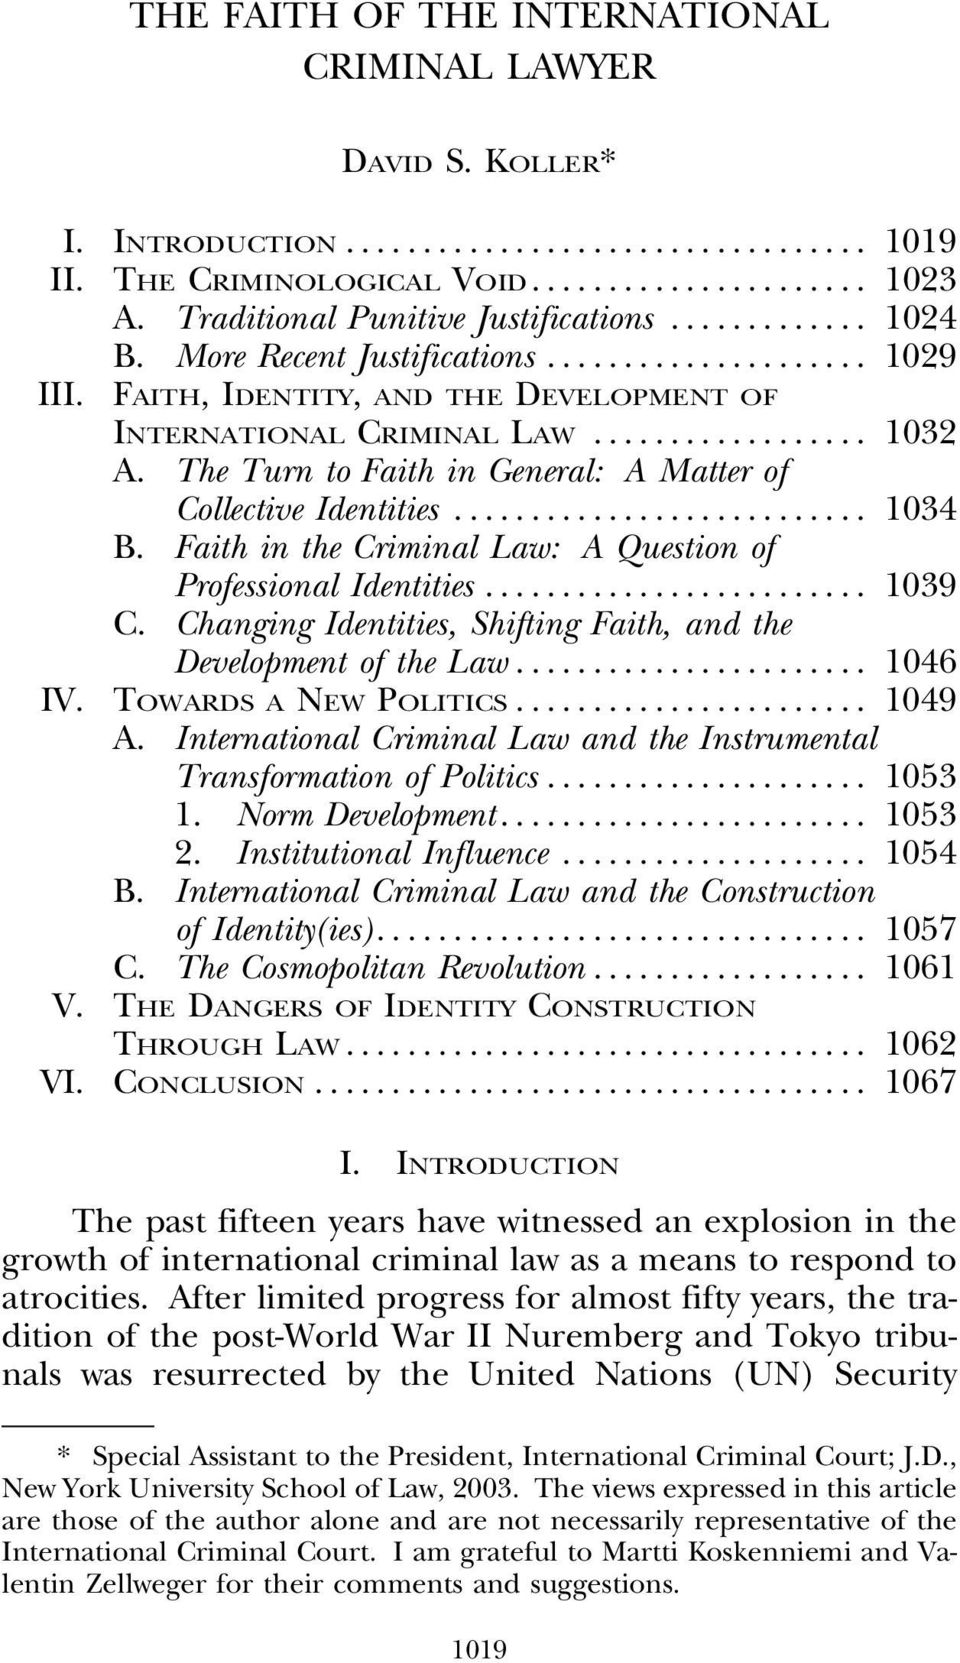 Faith in the Criminal Law: A Question of Professional Identities... 1039 C. Changing Identities, Shifting Faith, and the Development of the Law... 1046 IV. TOWARDS A NEW POLITICS... 1049 A.